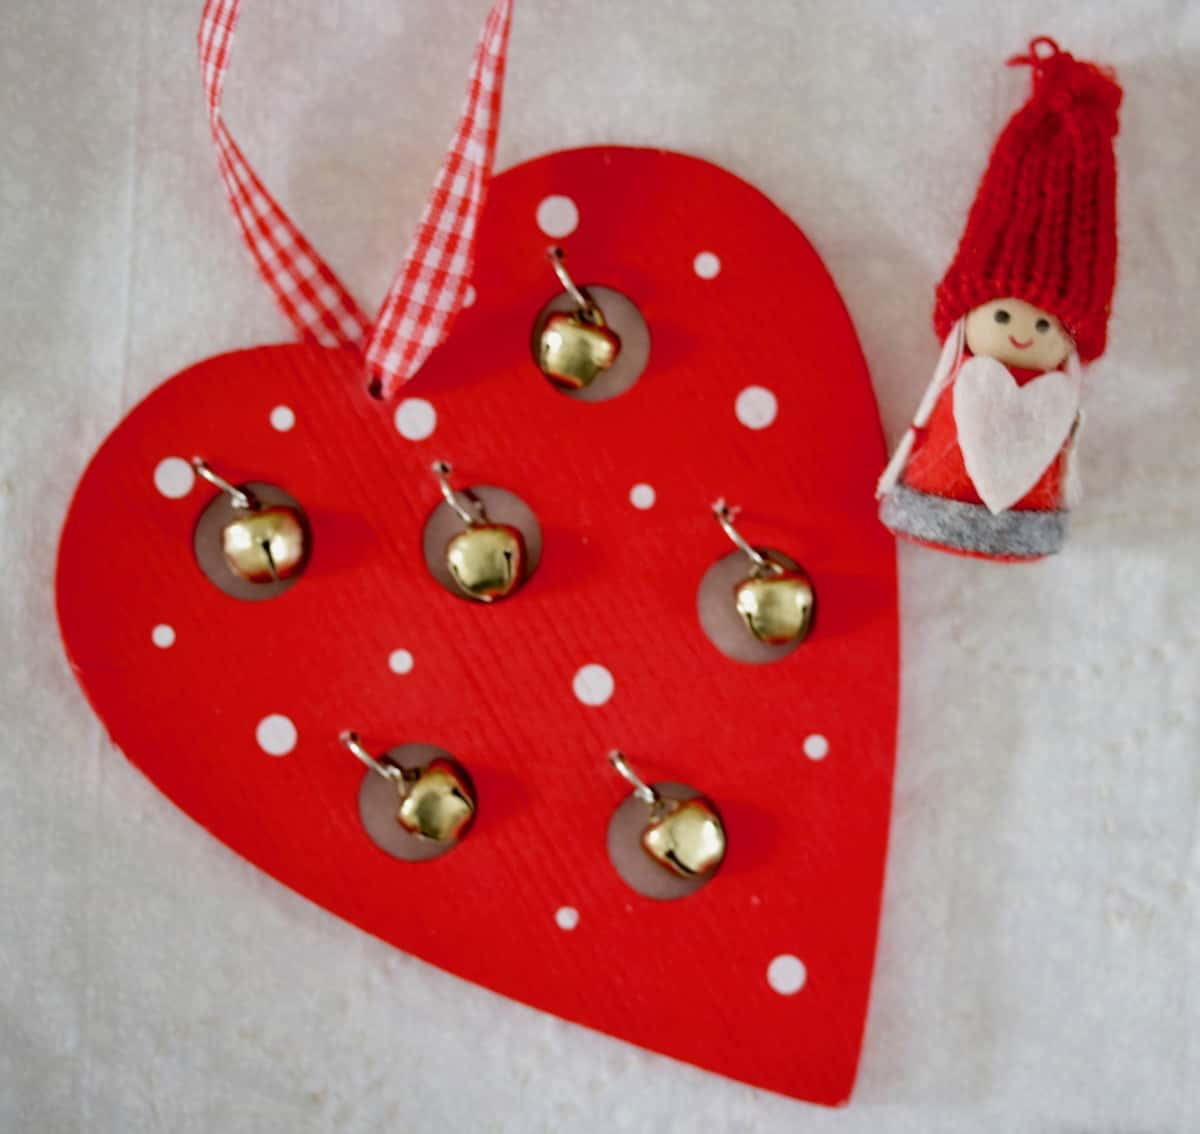 the heart knows goodness with these Finnish heart shaped xmas ornaments